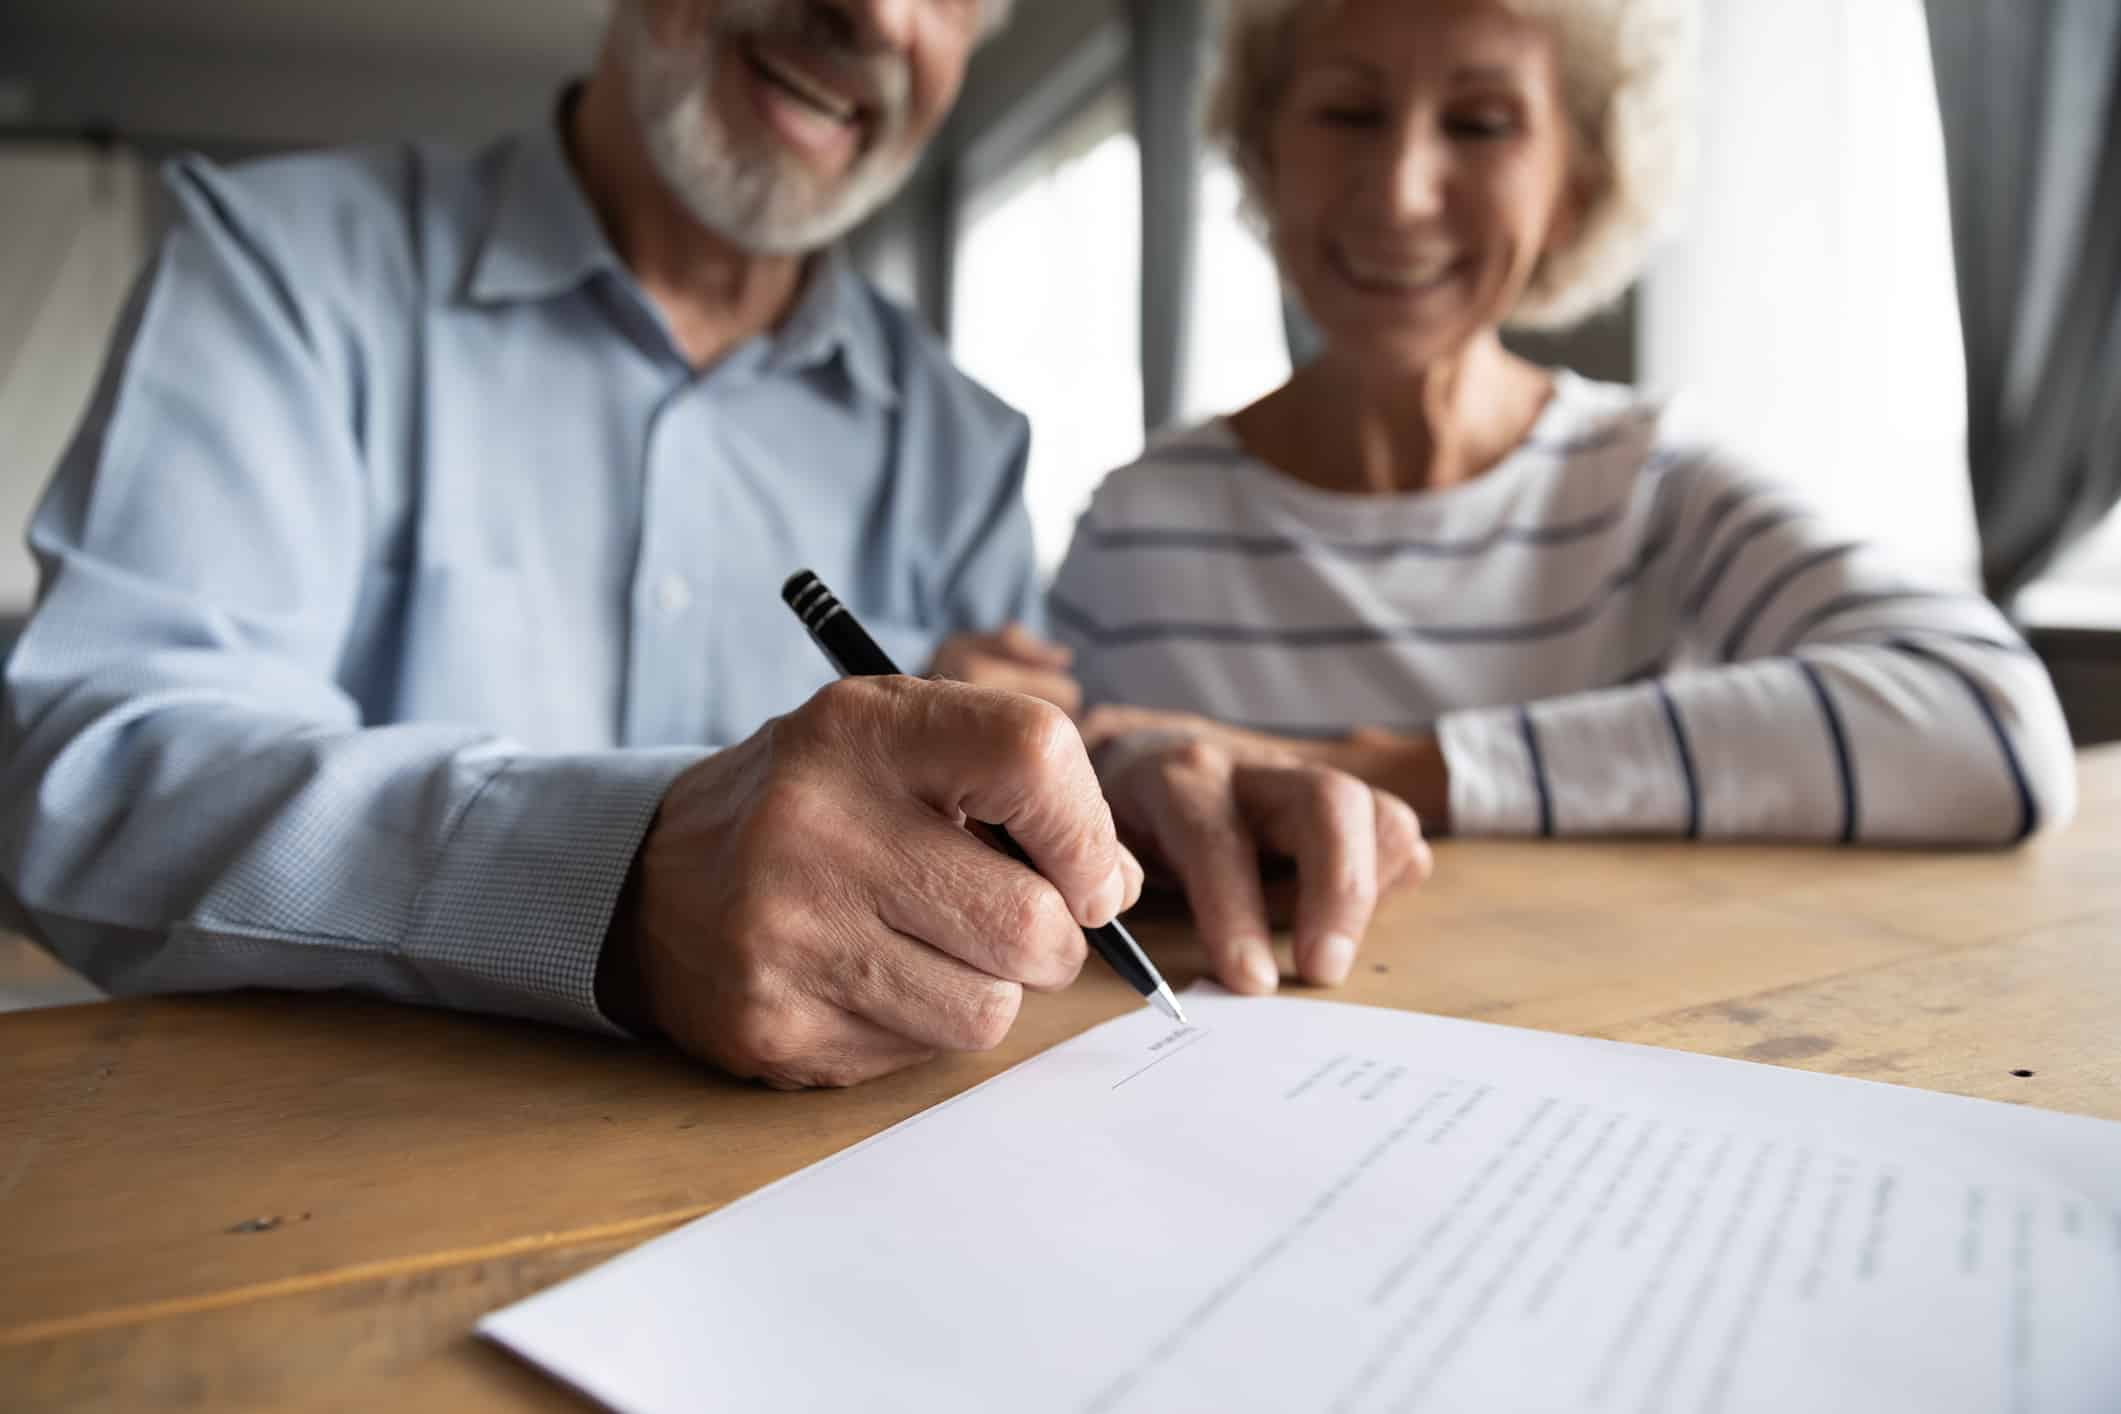 Close up focus on wrinkled male hand signing paper document.